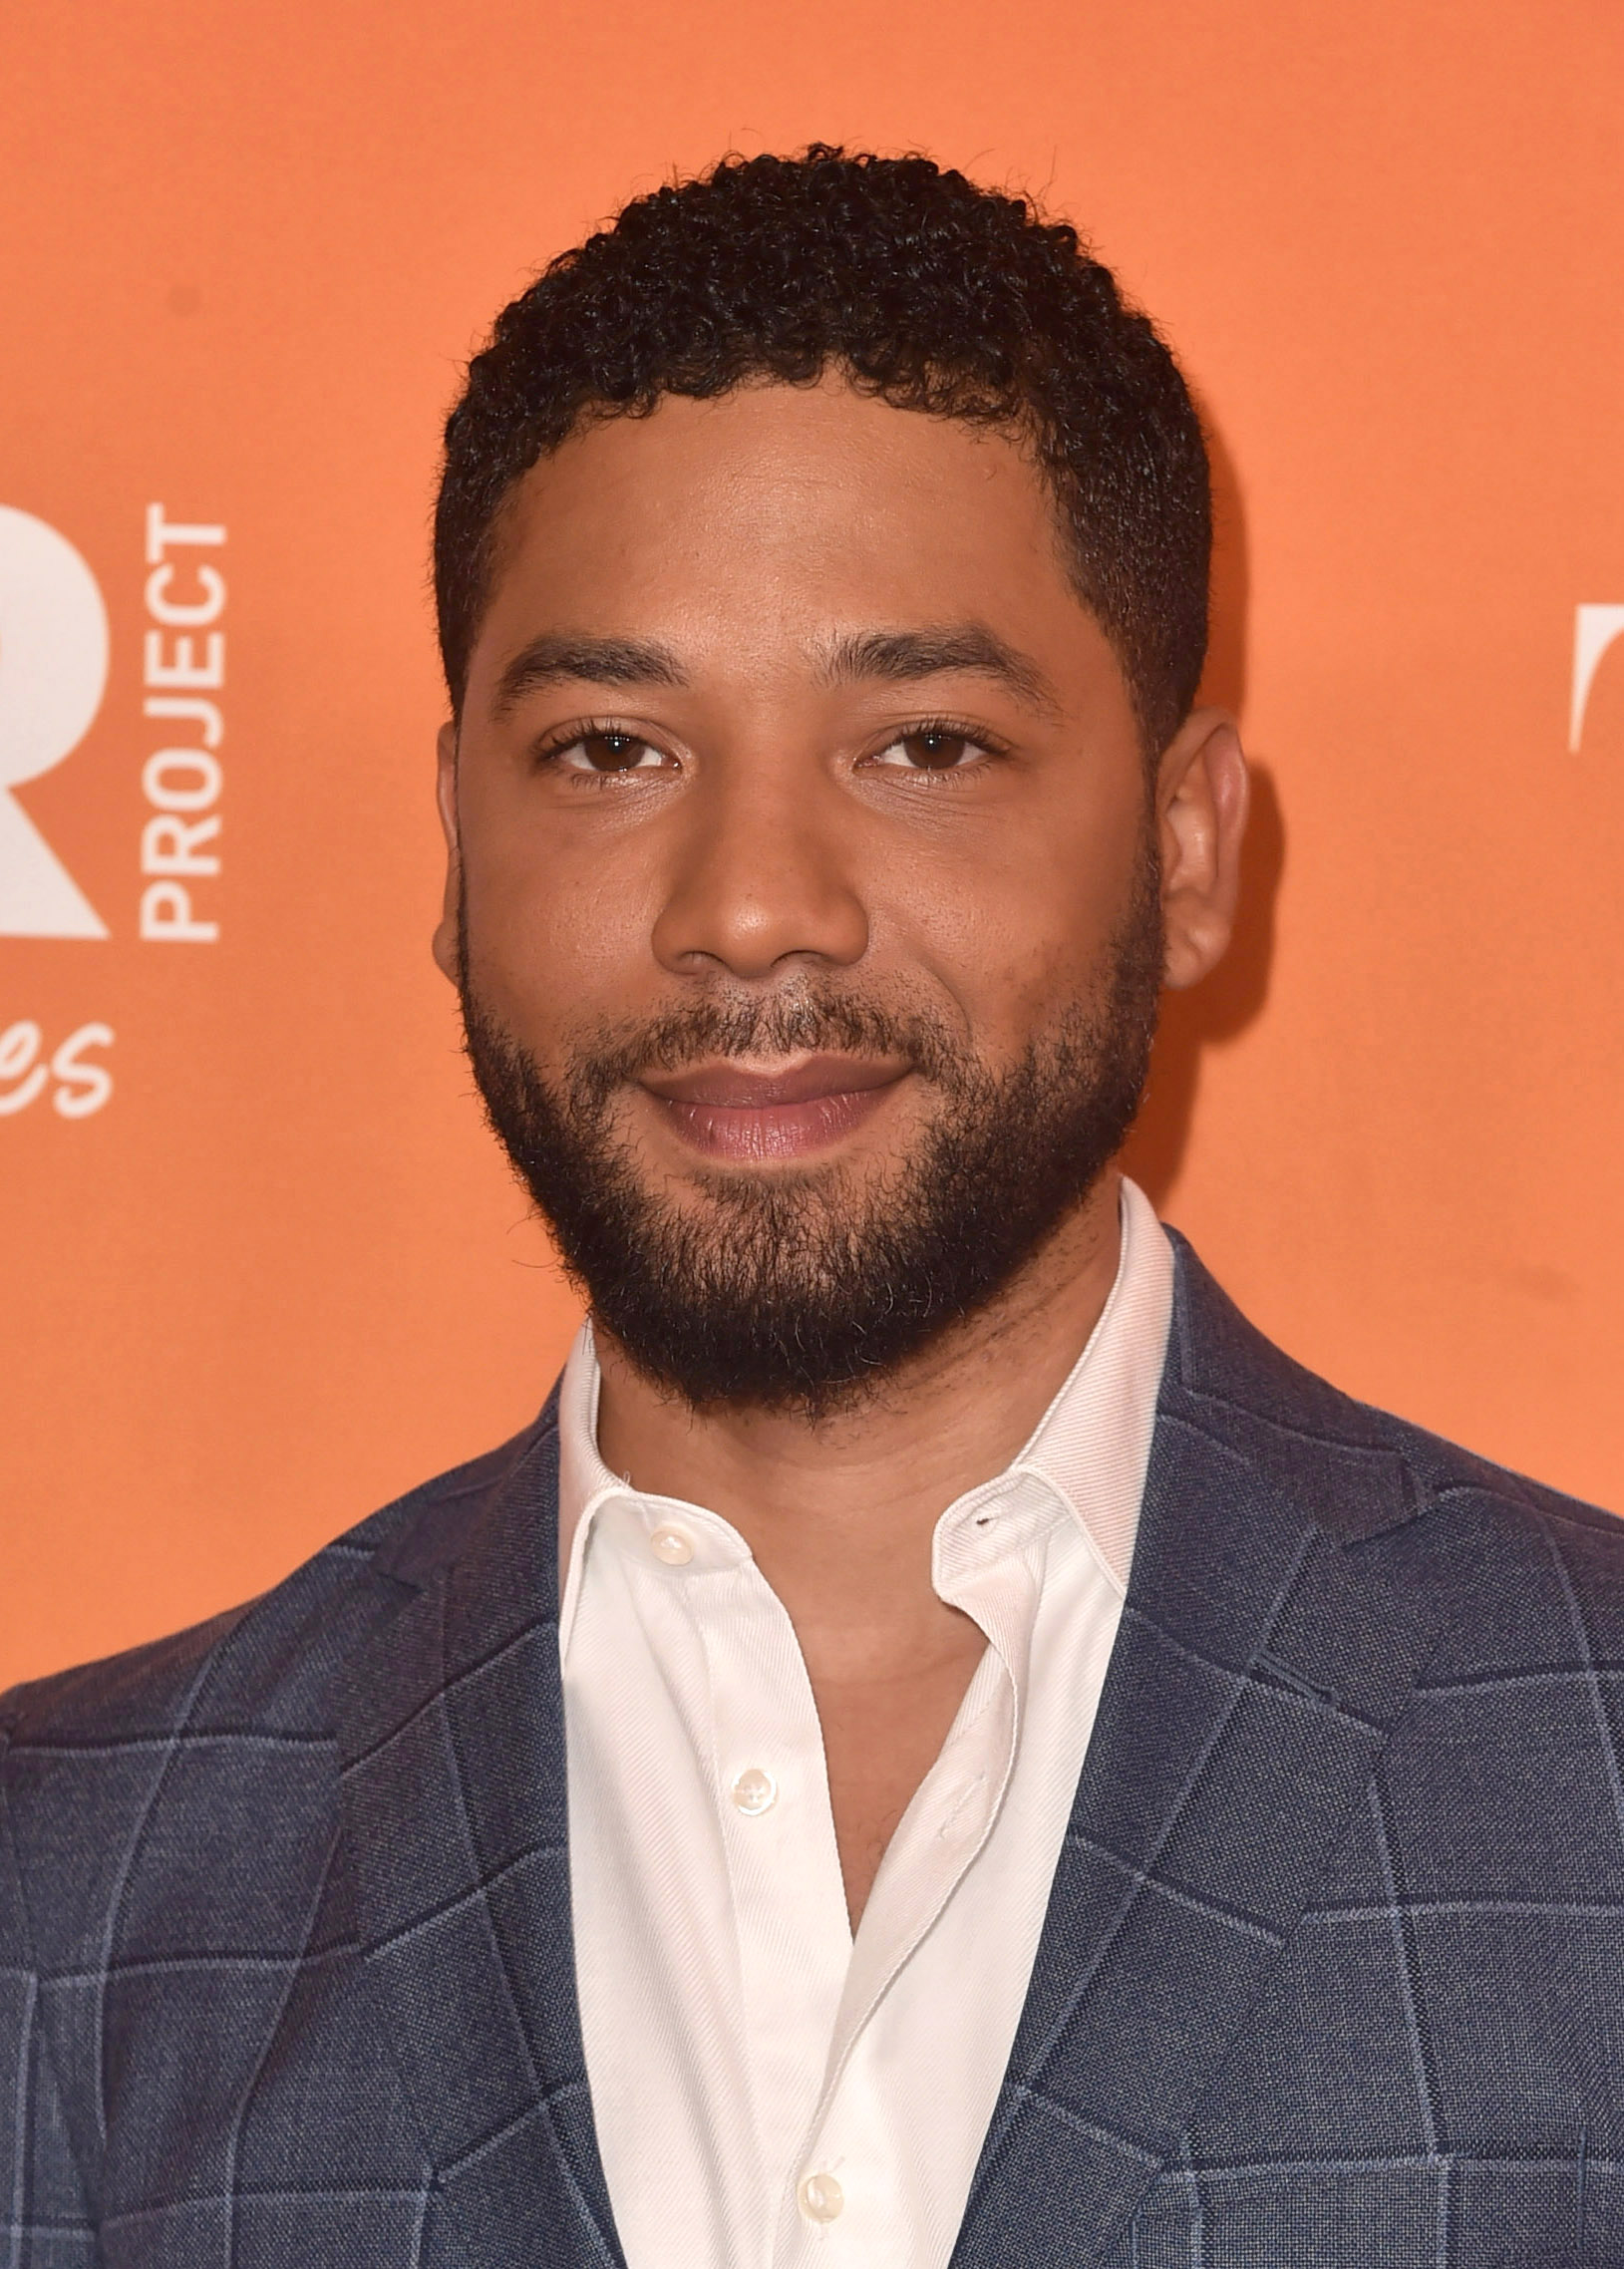 Jussie Smollett attends The Trevor Project's 2018 TrevorLIVE Gala at The Beverly Hilton Hotel on December 02, 2018 in Beverly Hills, California.